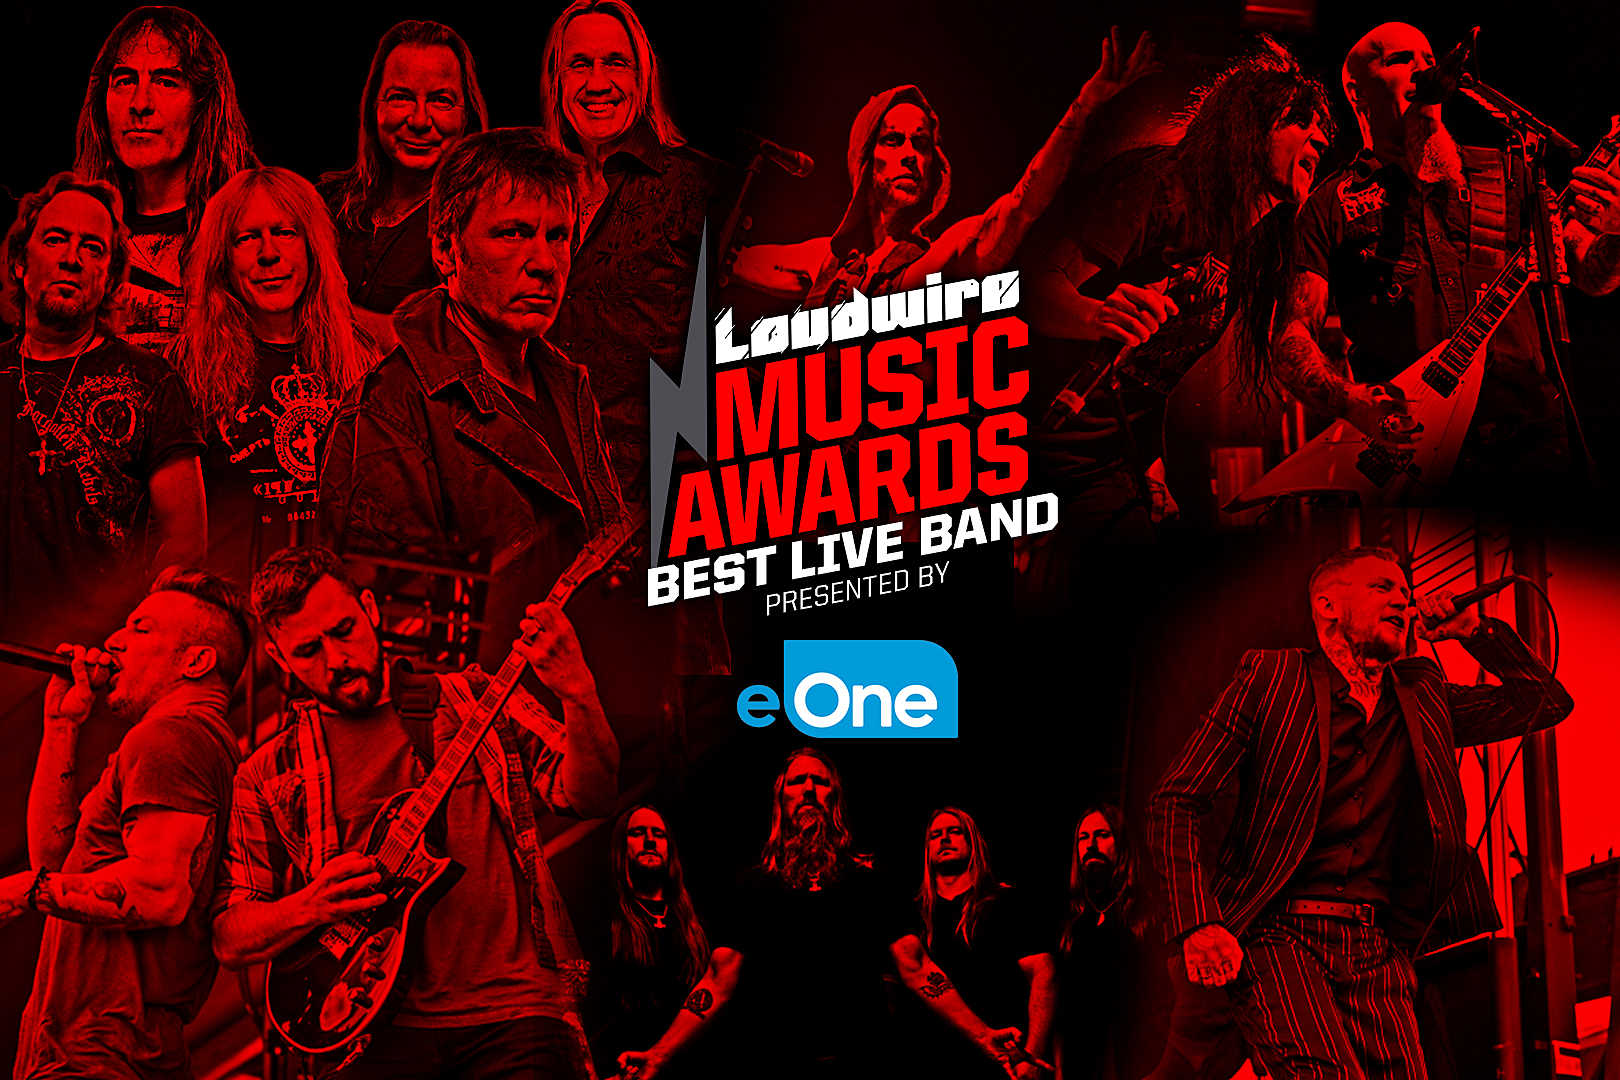 Vote for the Best Live Band – 2017 Loudwire Music Awards